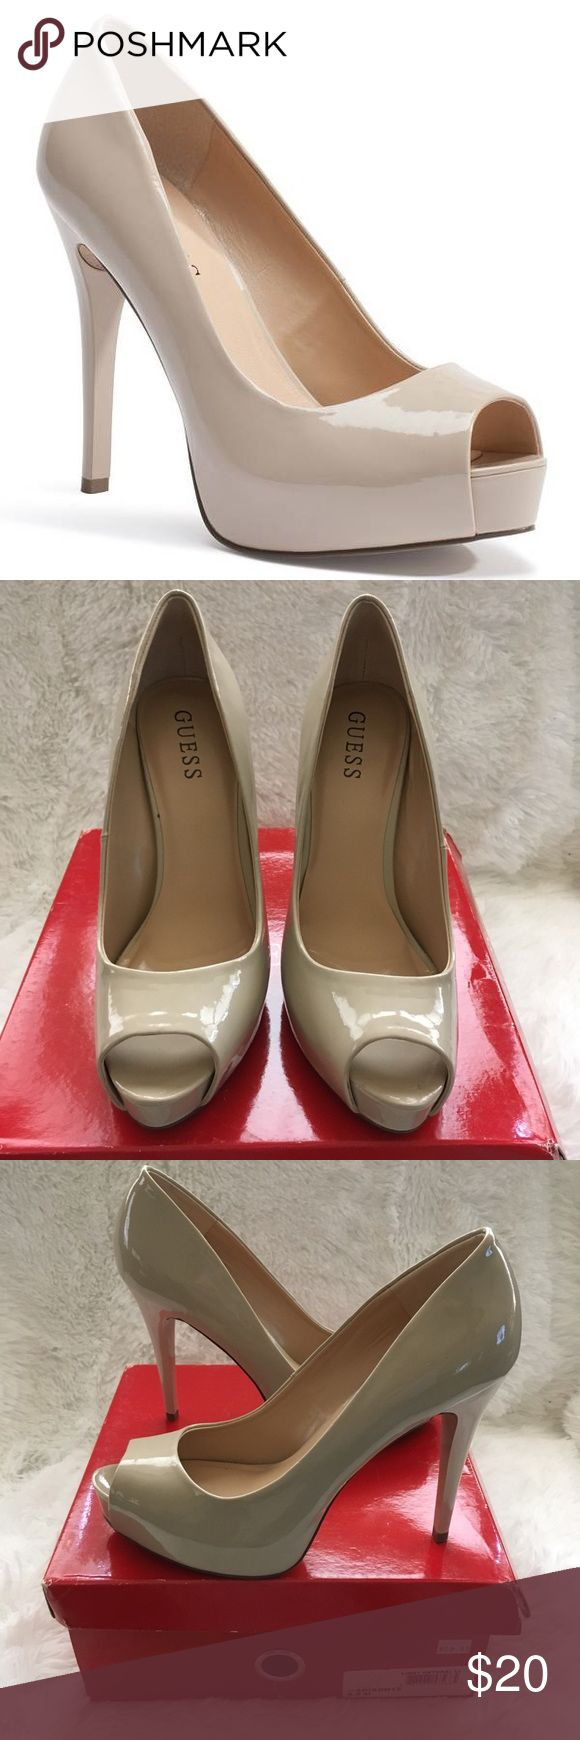 Guess Adison peep-toe patent pumps Cream-colored, peep-toe, faux-patent-leather pumps from Guess.  4-inch heels. These were tried on and worn around the house for a bit, but never actually worn outside. They're in great condition.  Comes with its original box. Guess Shoes Heels